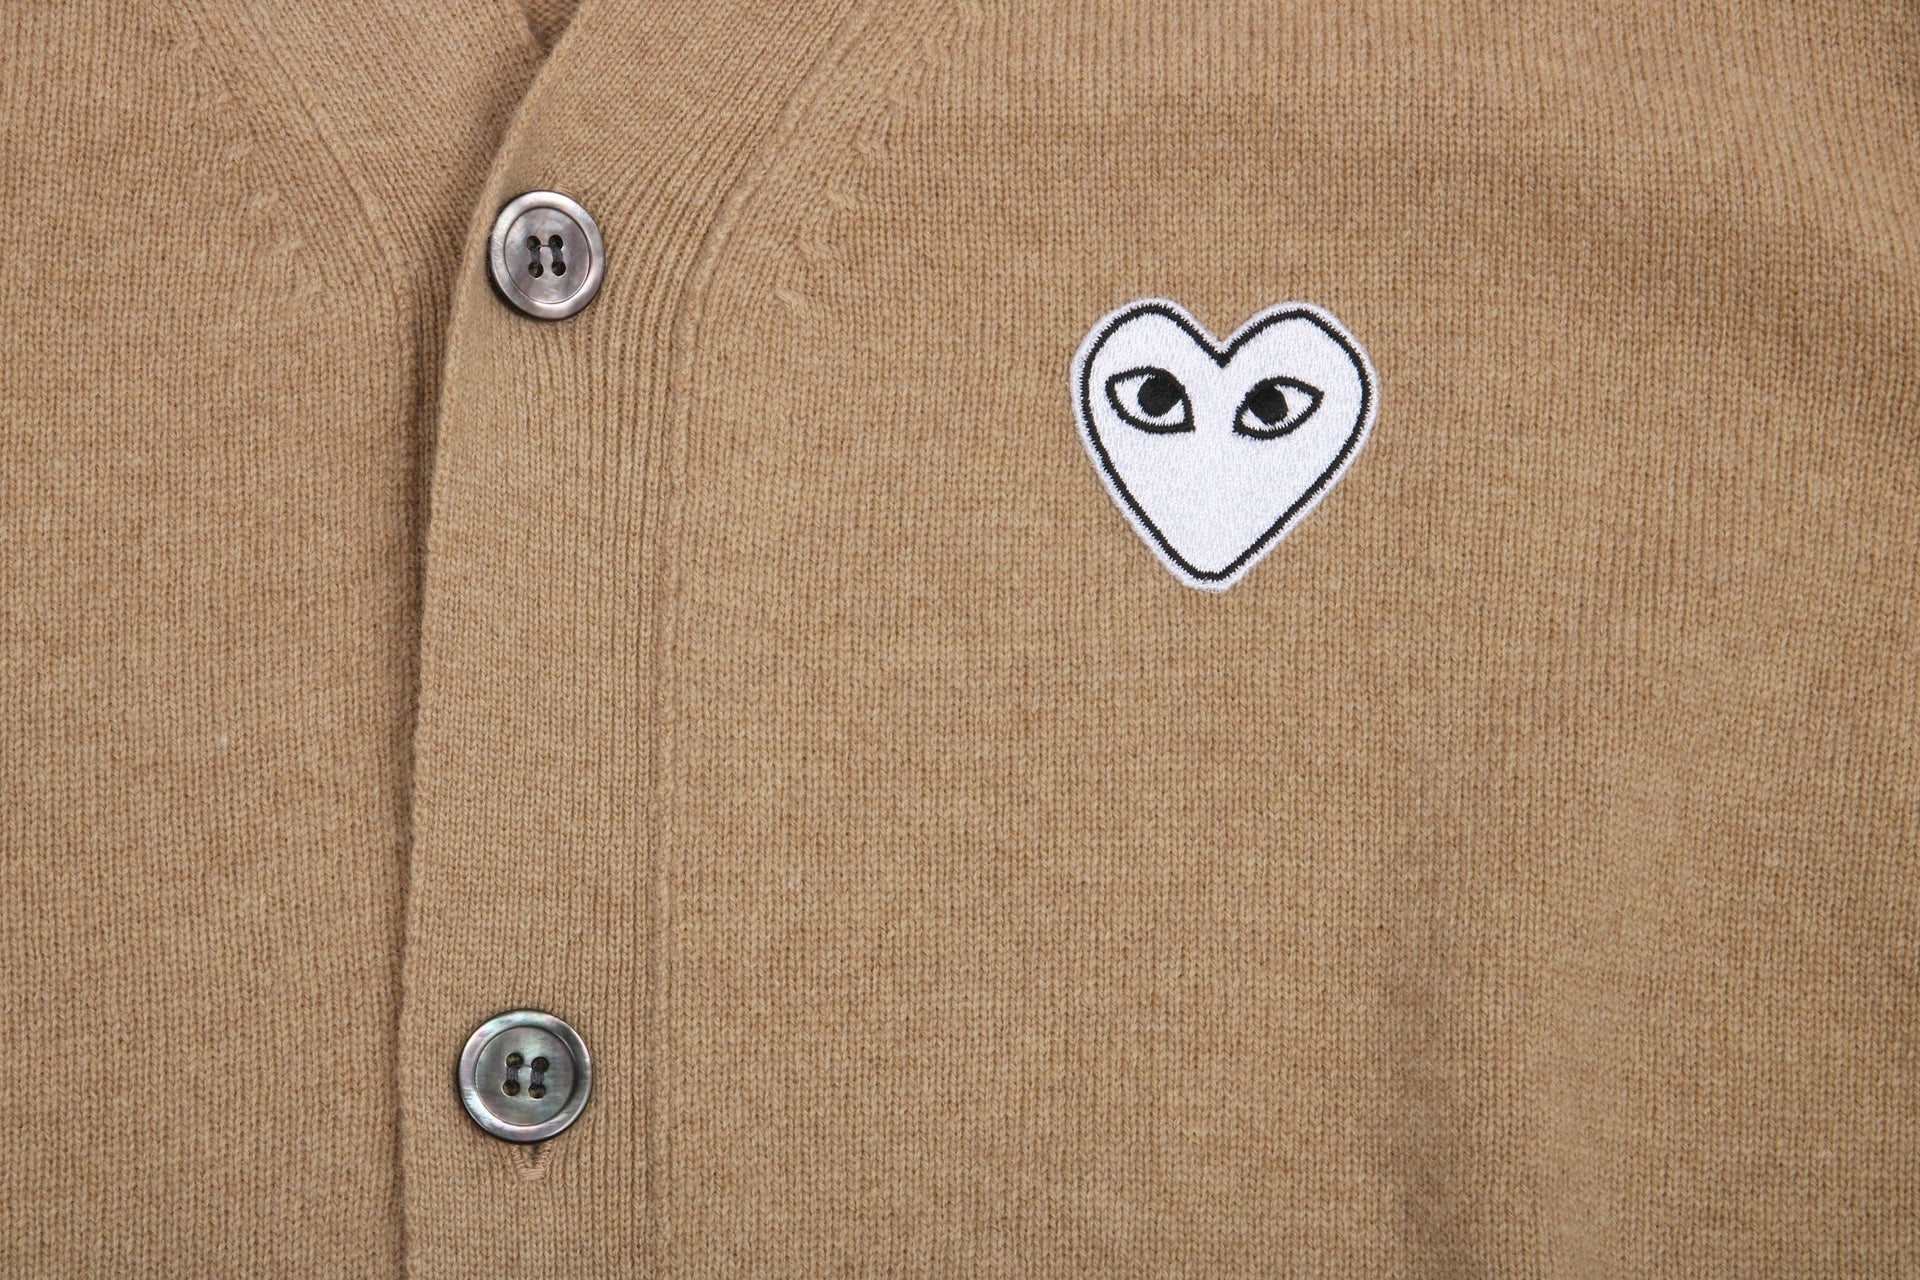 WHITE HEART PATCH CAMEL CARDIGAN MENS SOFTGOODS COMME DES GARCONS